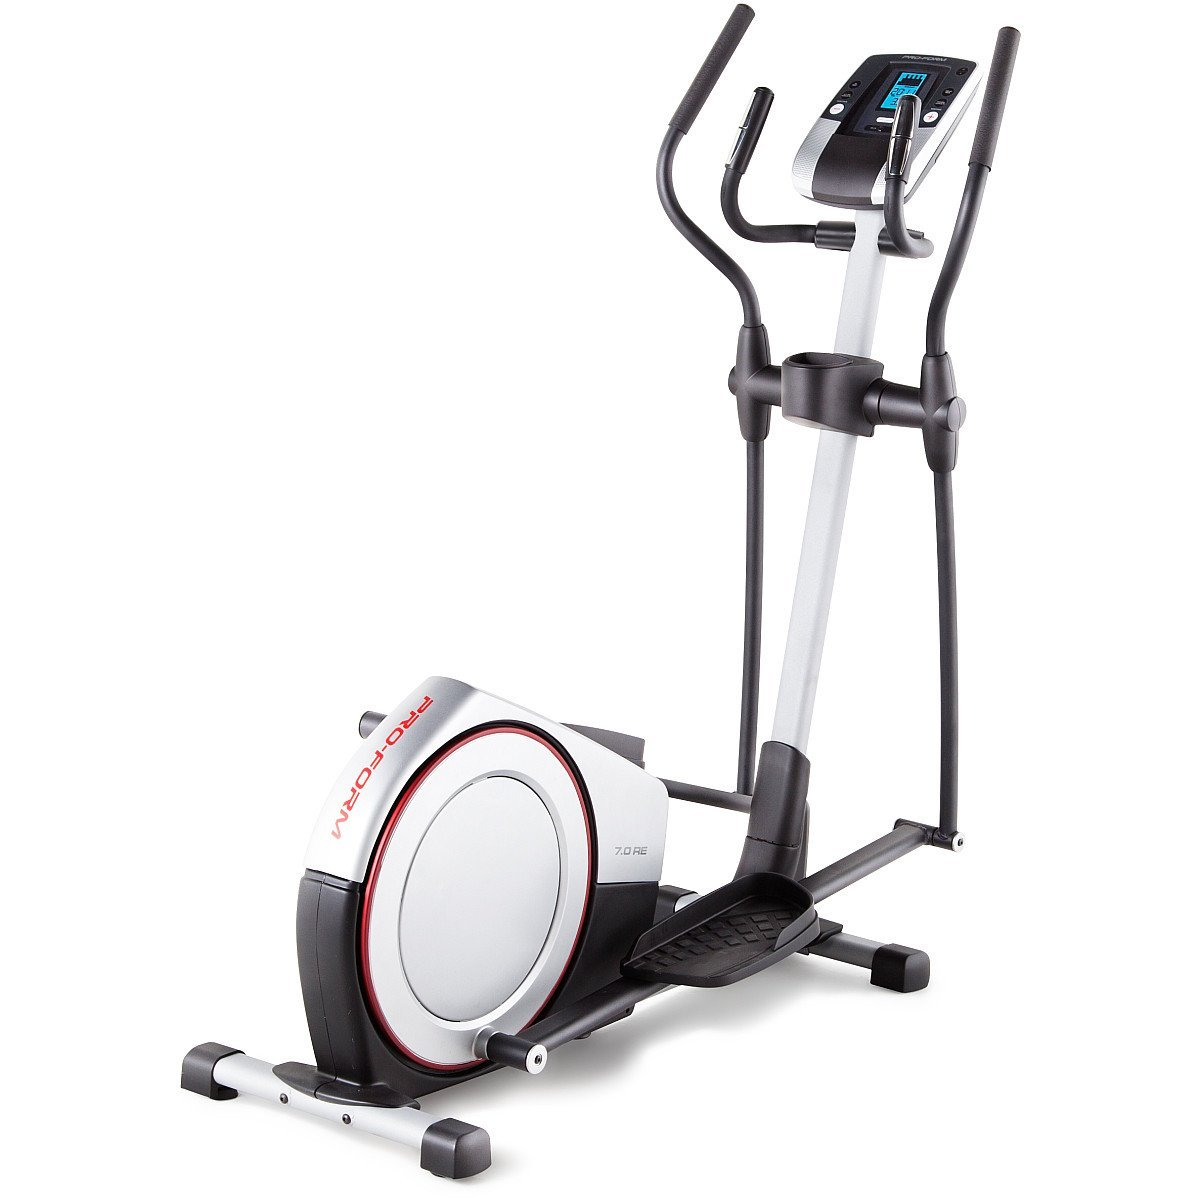 Proform 7 0 Re Elliptical Trainer Review